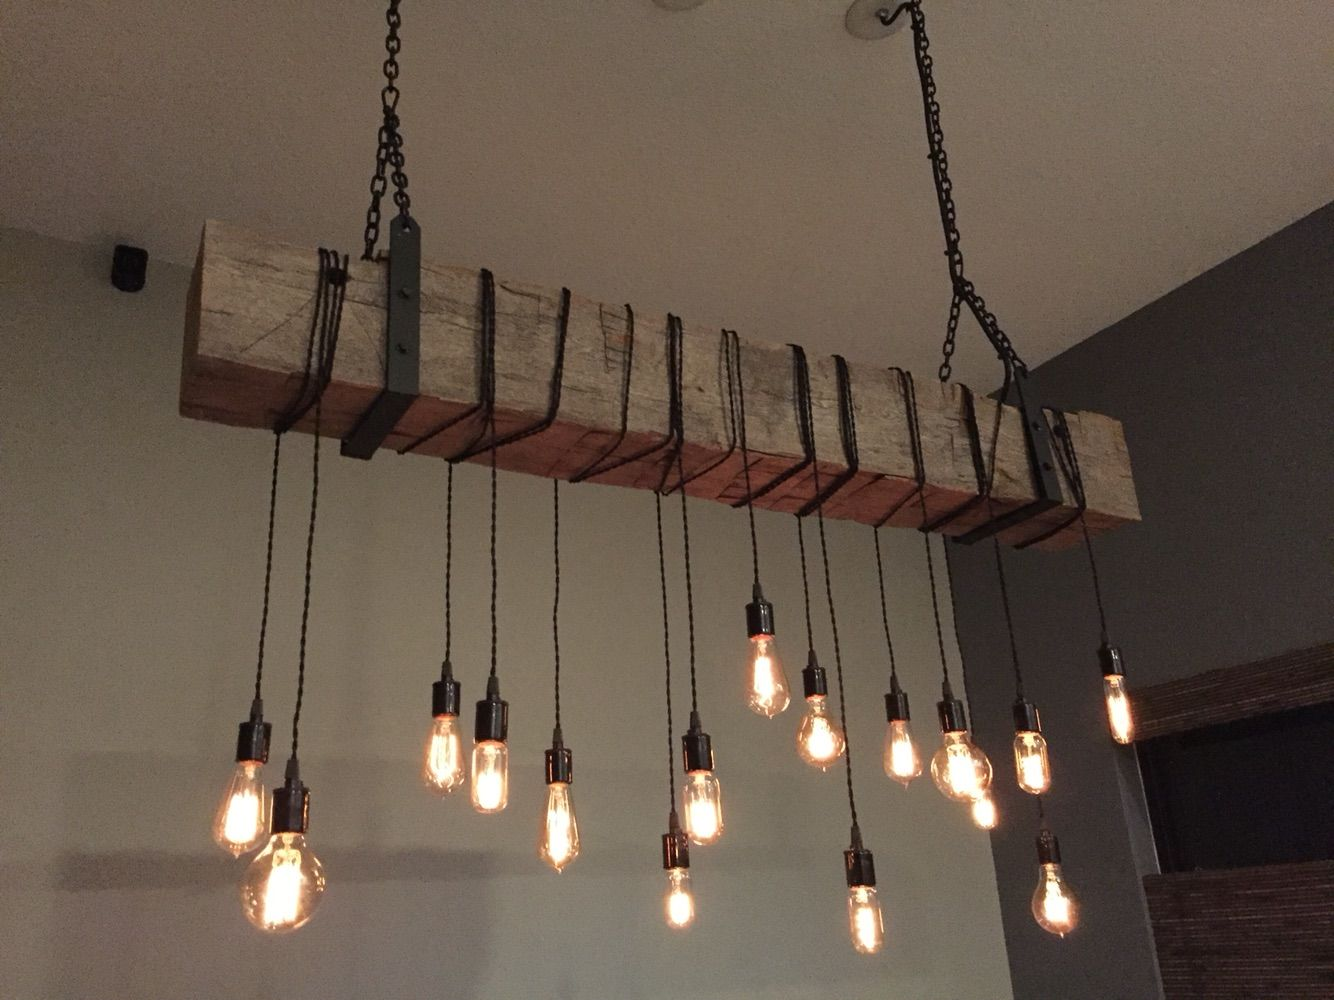 Buy a custom reclaimed barn beam chandelier light fixture modern custom made reclaimed barn beam chandelier light fixture modern industrial rustic restaurant bar aloadofball Gallery